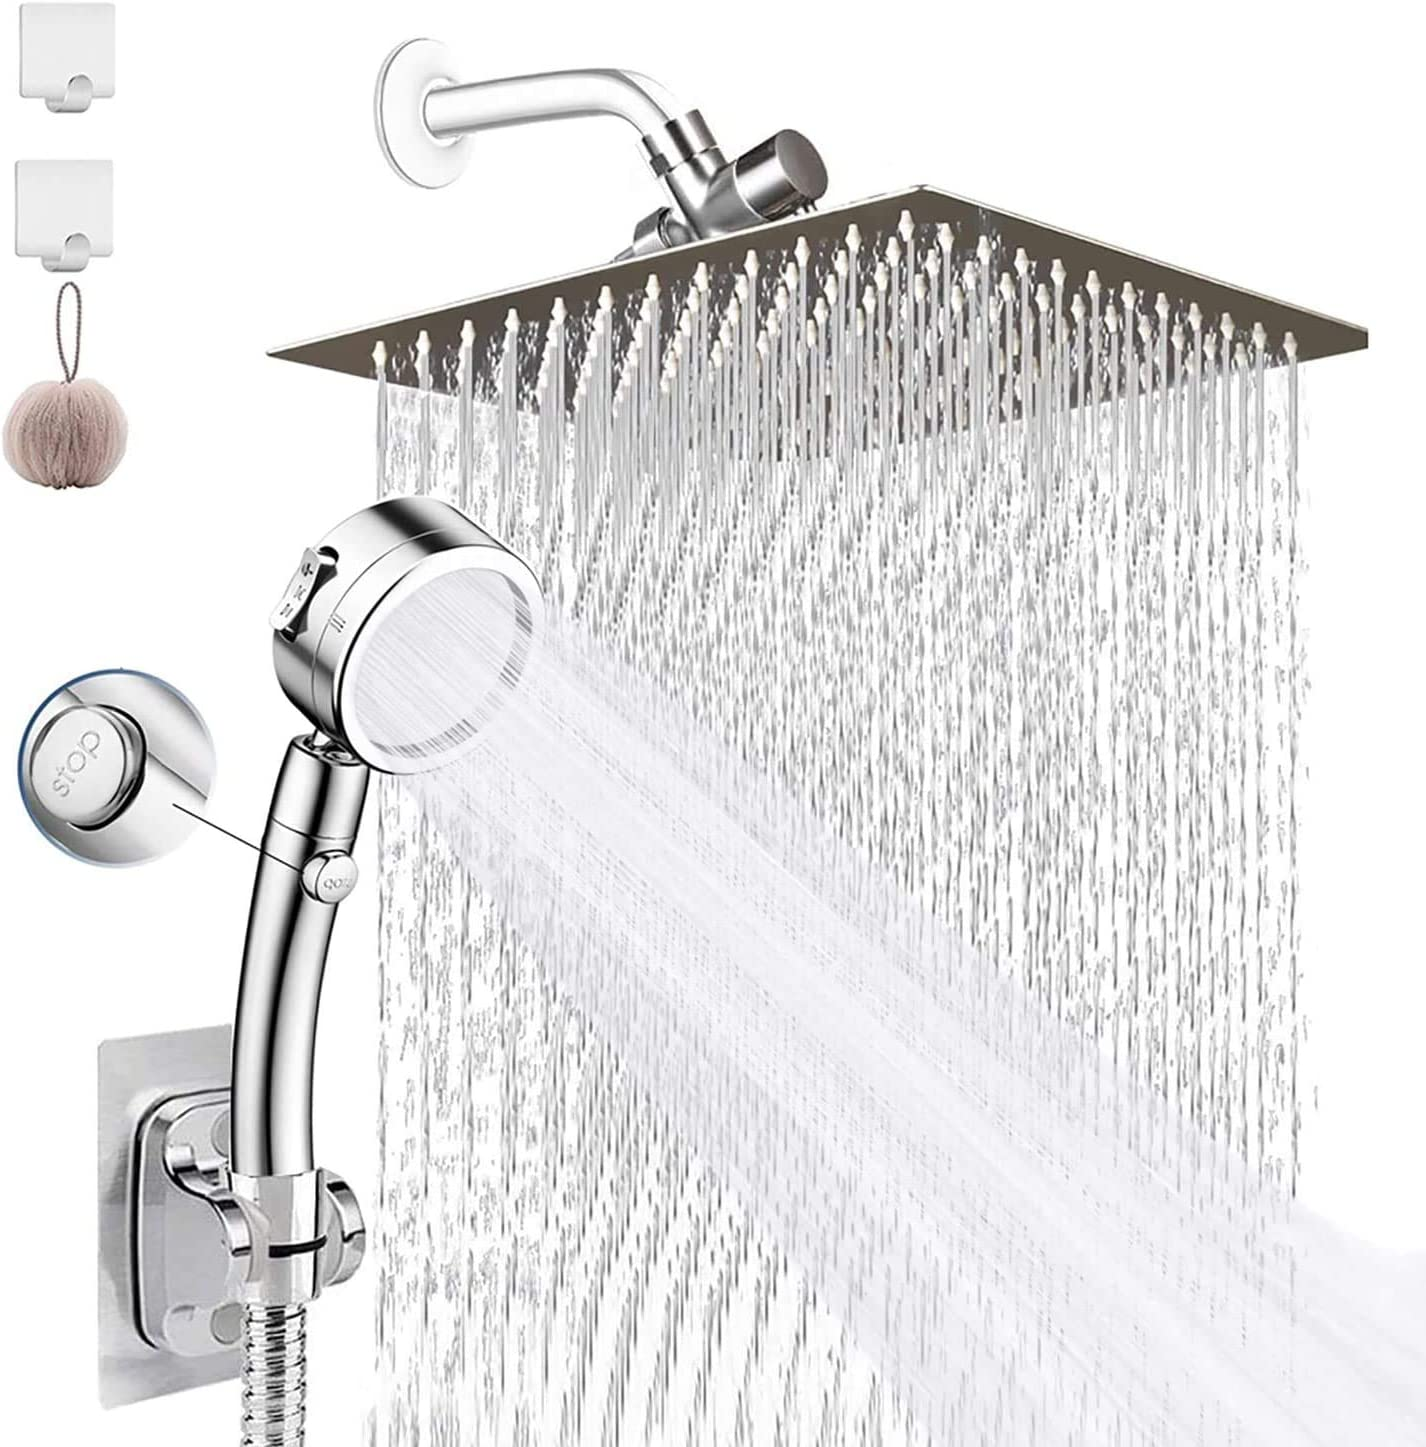 Shower New York Mall Head Bellearlly 8'' High Pressure Ste Rainfall Free Shipping New Stainless